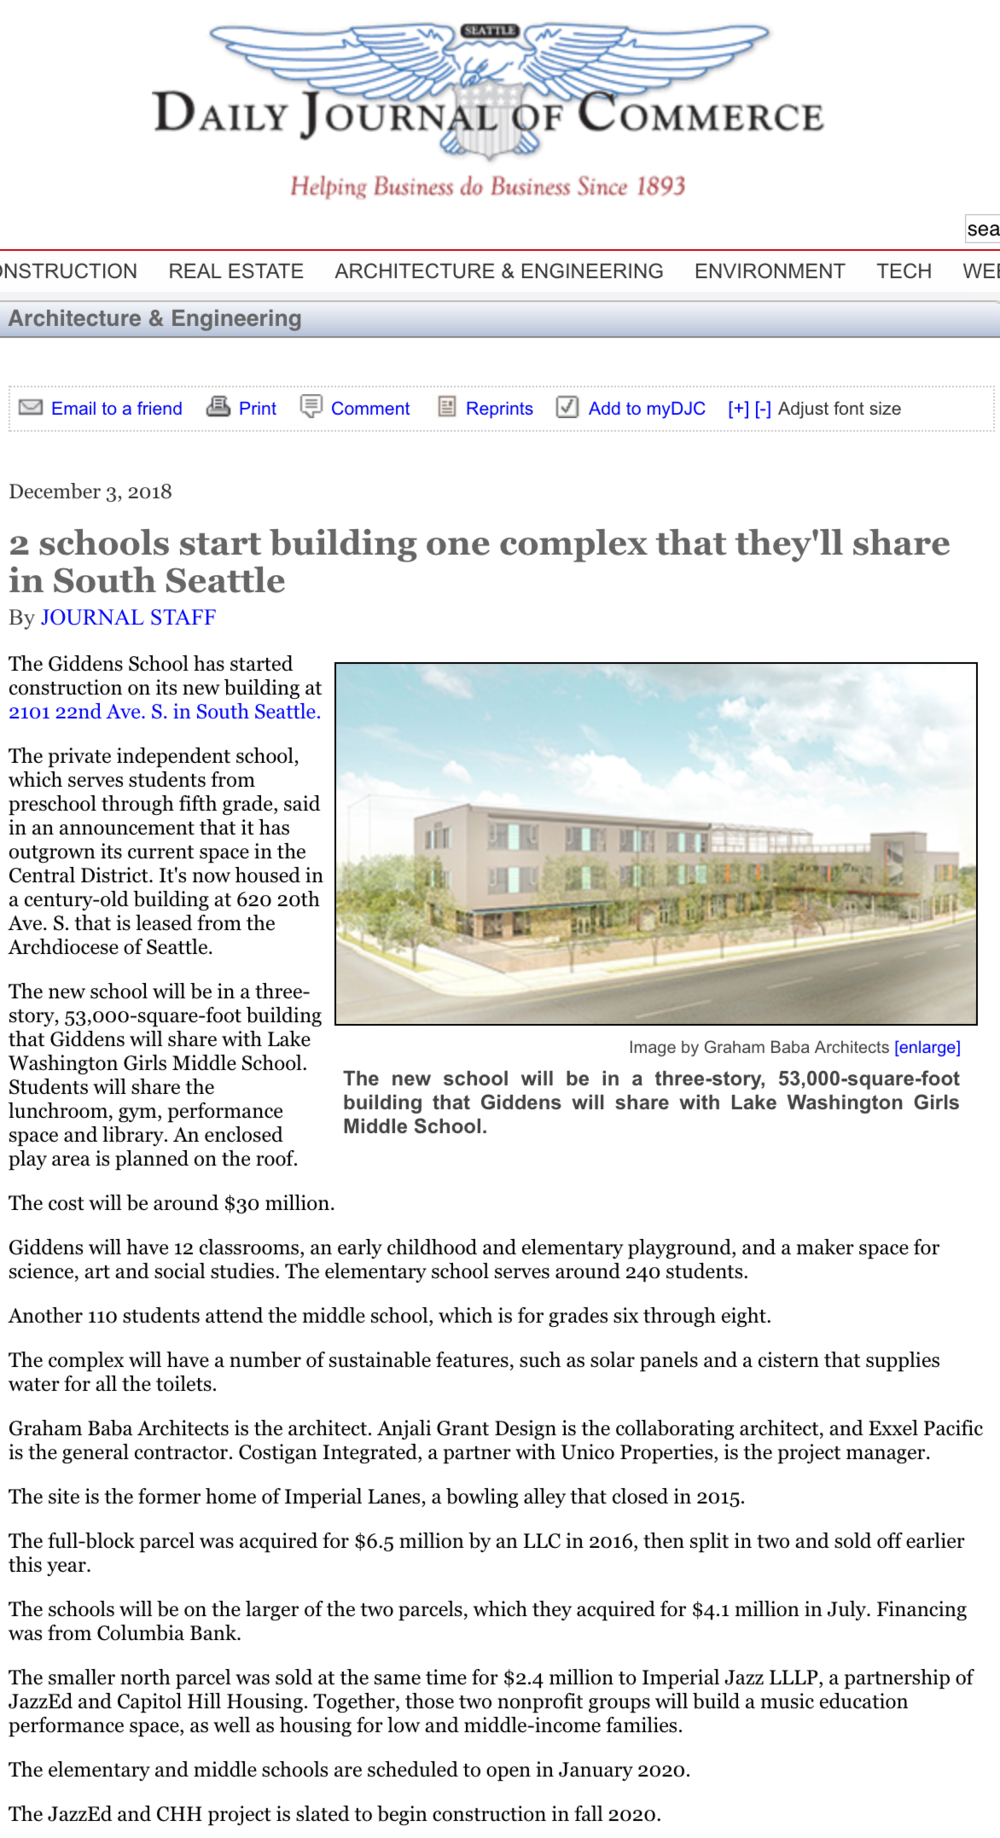 2 schools start building one complex that they'll share in South Seattle - By Journal Staff / December 3, 2018 / Daily Journal of Commerce